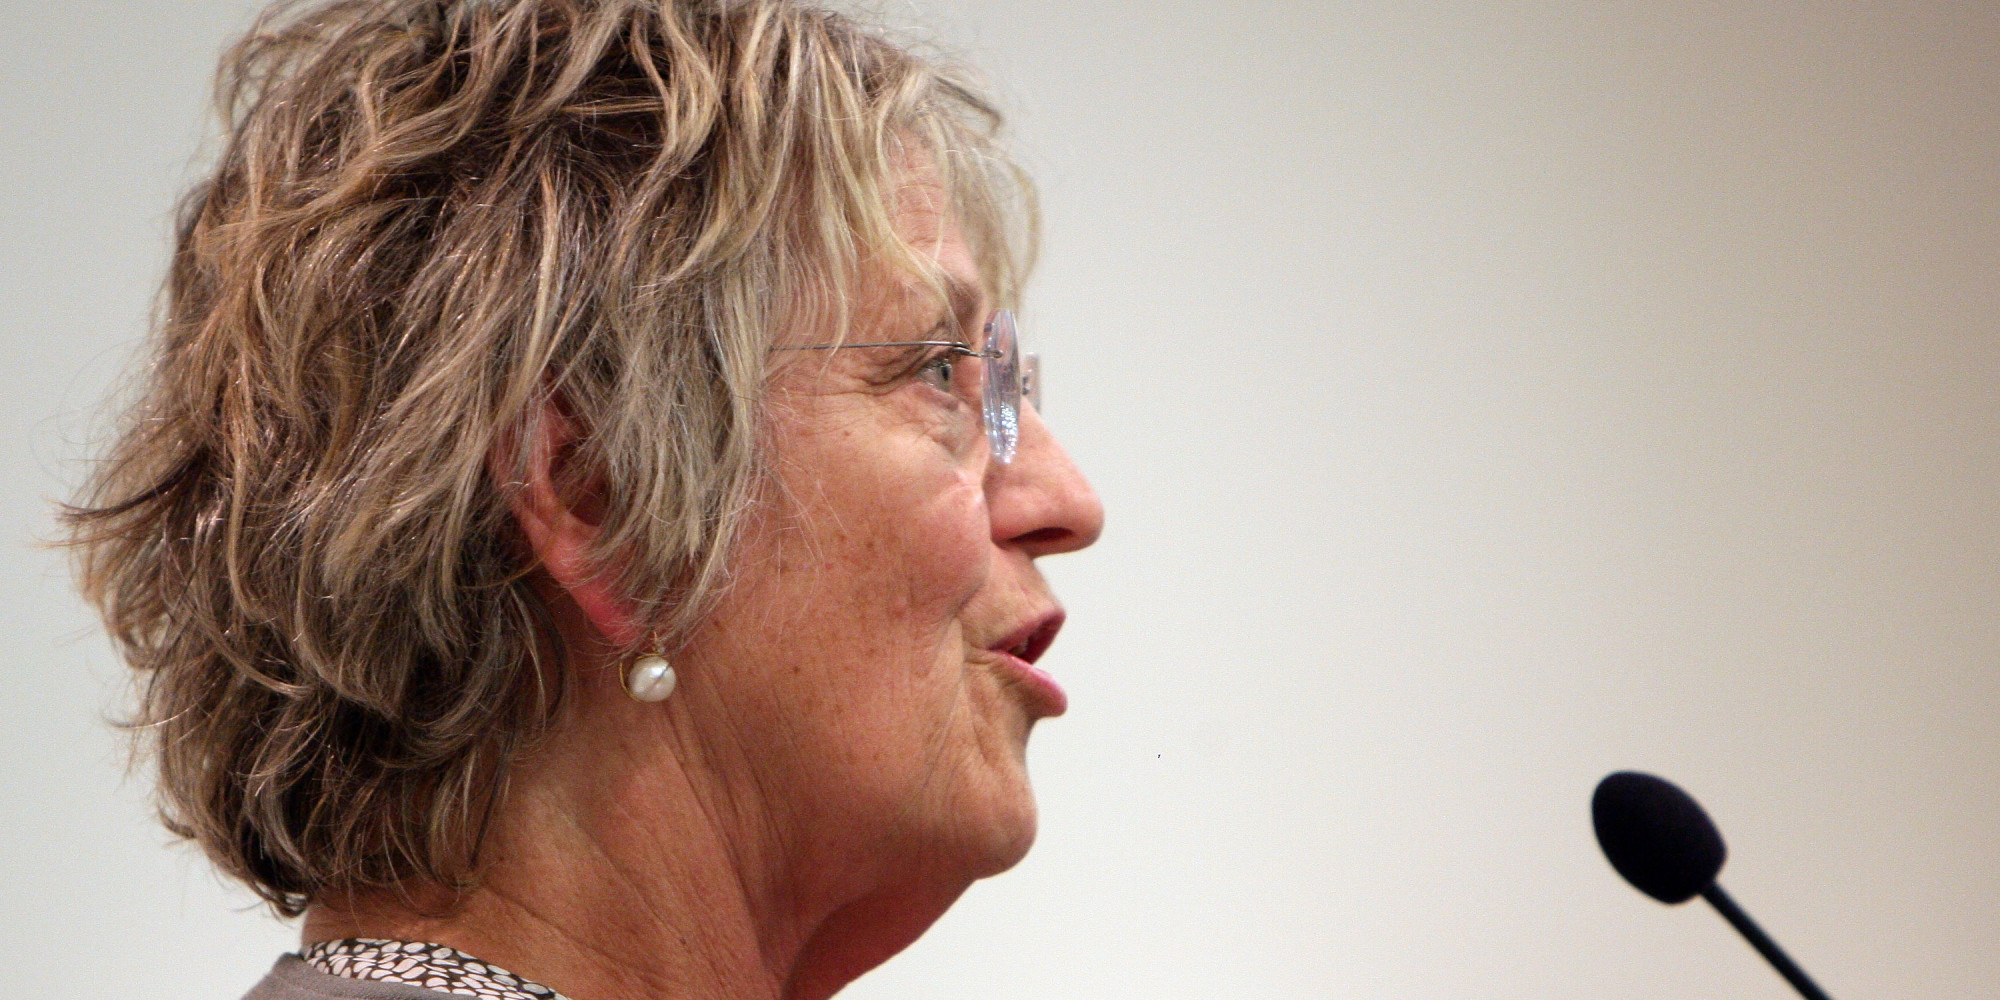 germaine greer - photo #17